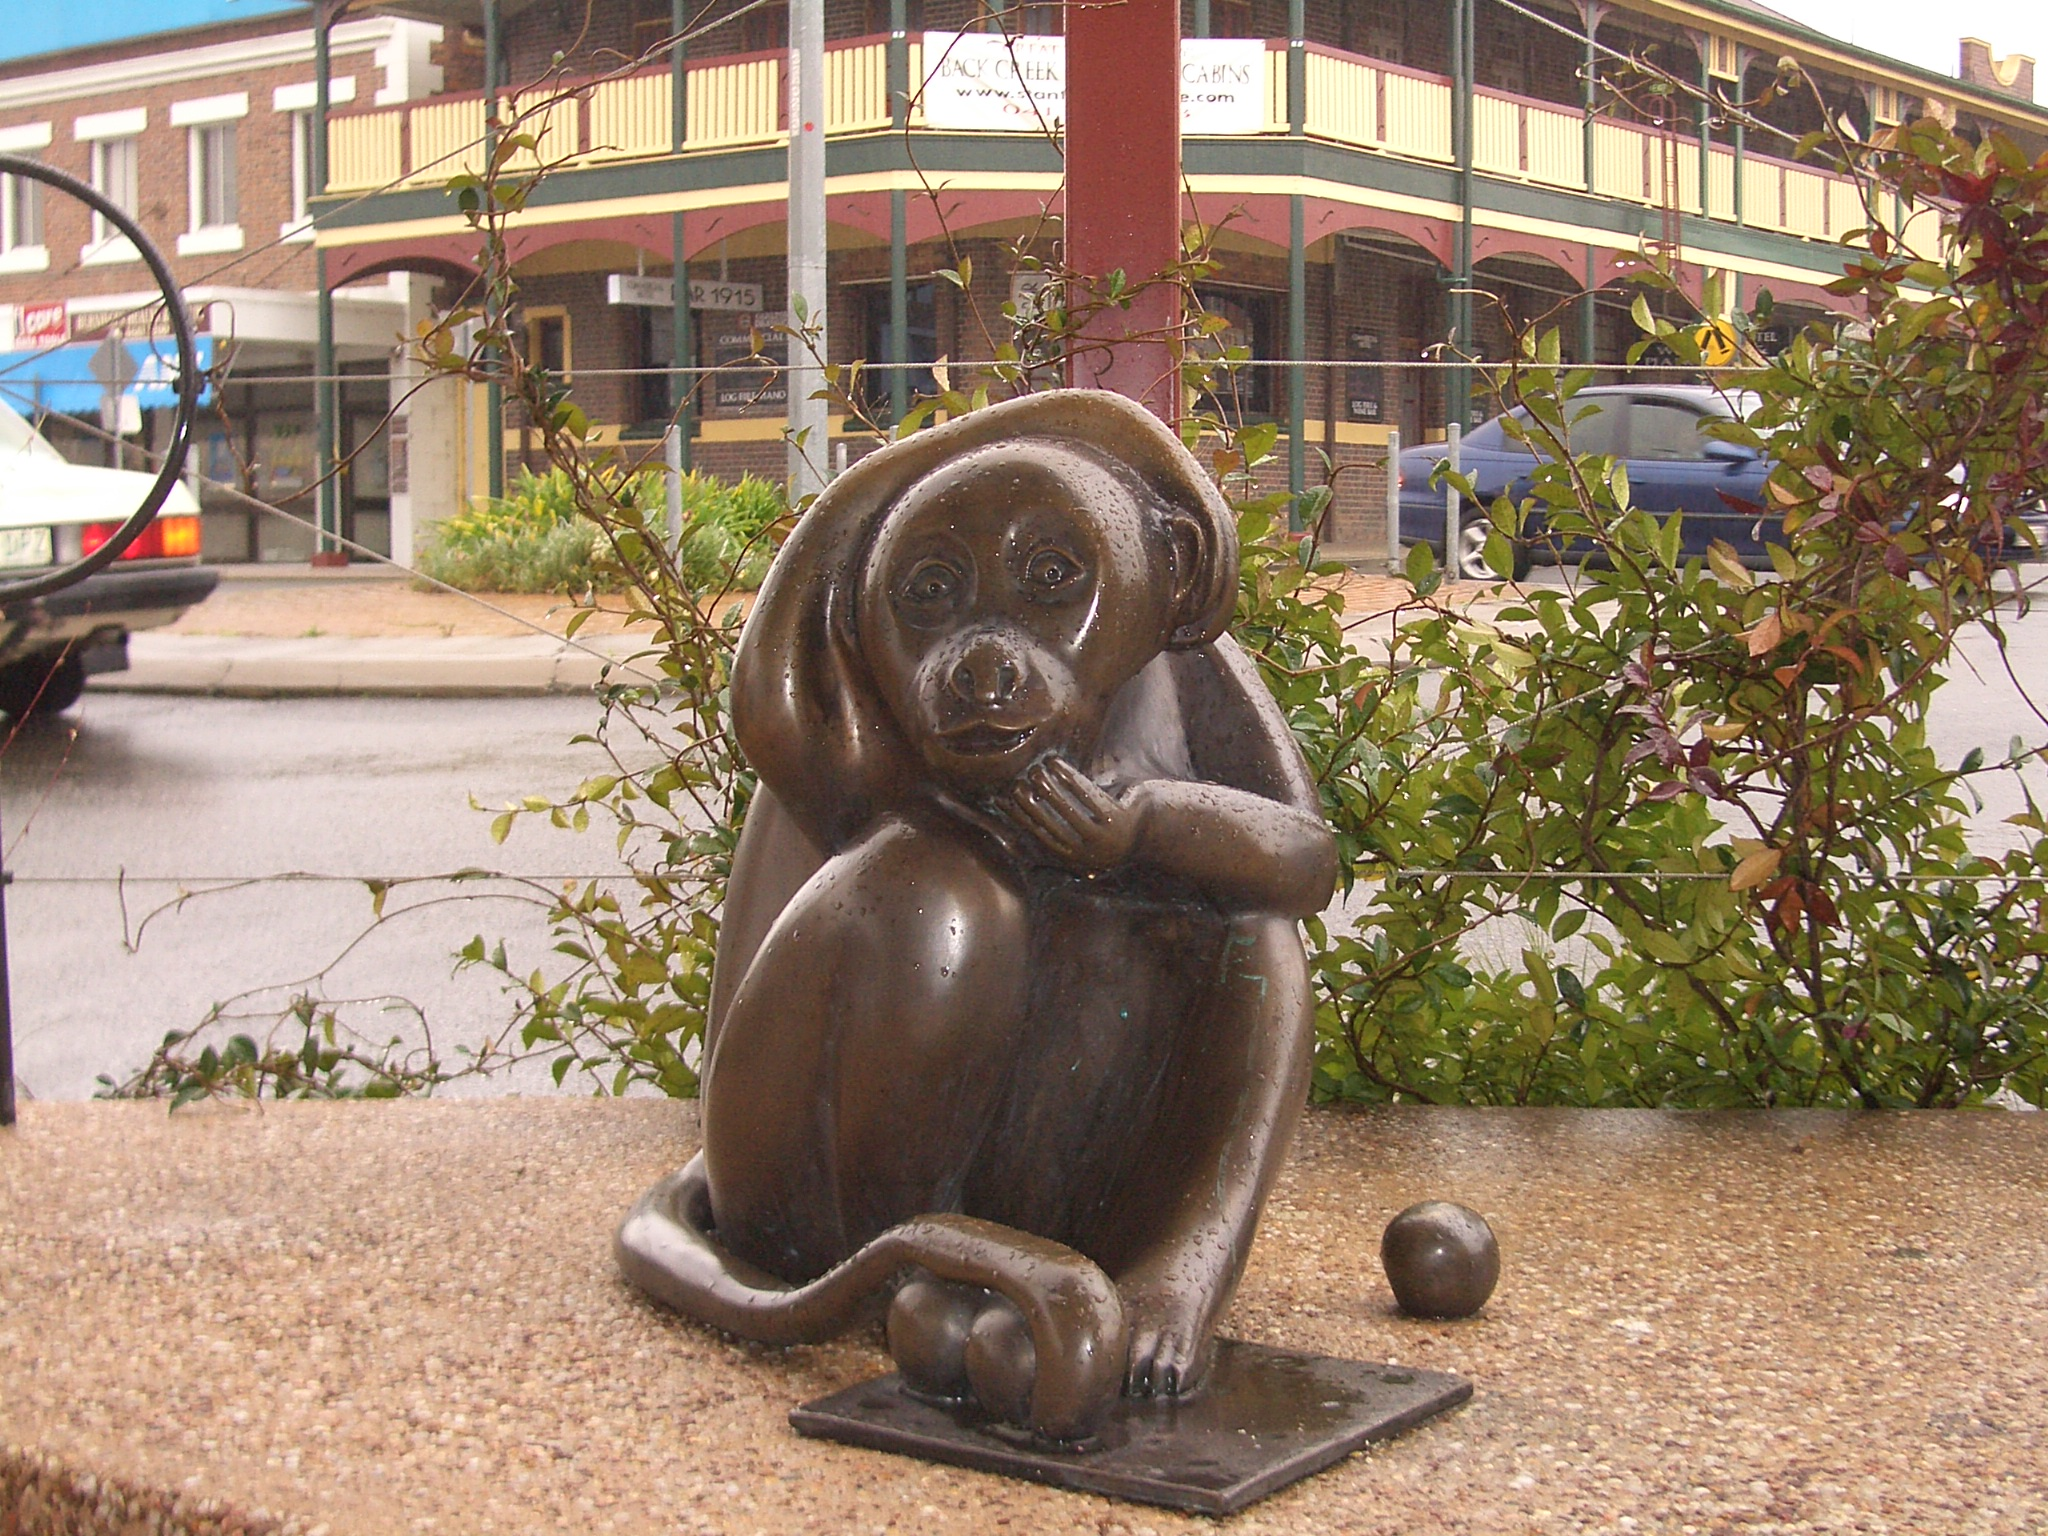 File:Stanthorpe-brass-monkey-1943.jpg - Wikimedia Commons